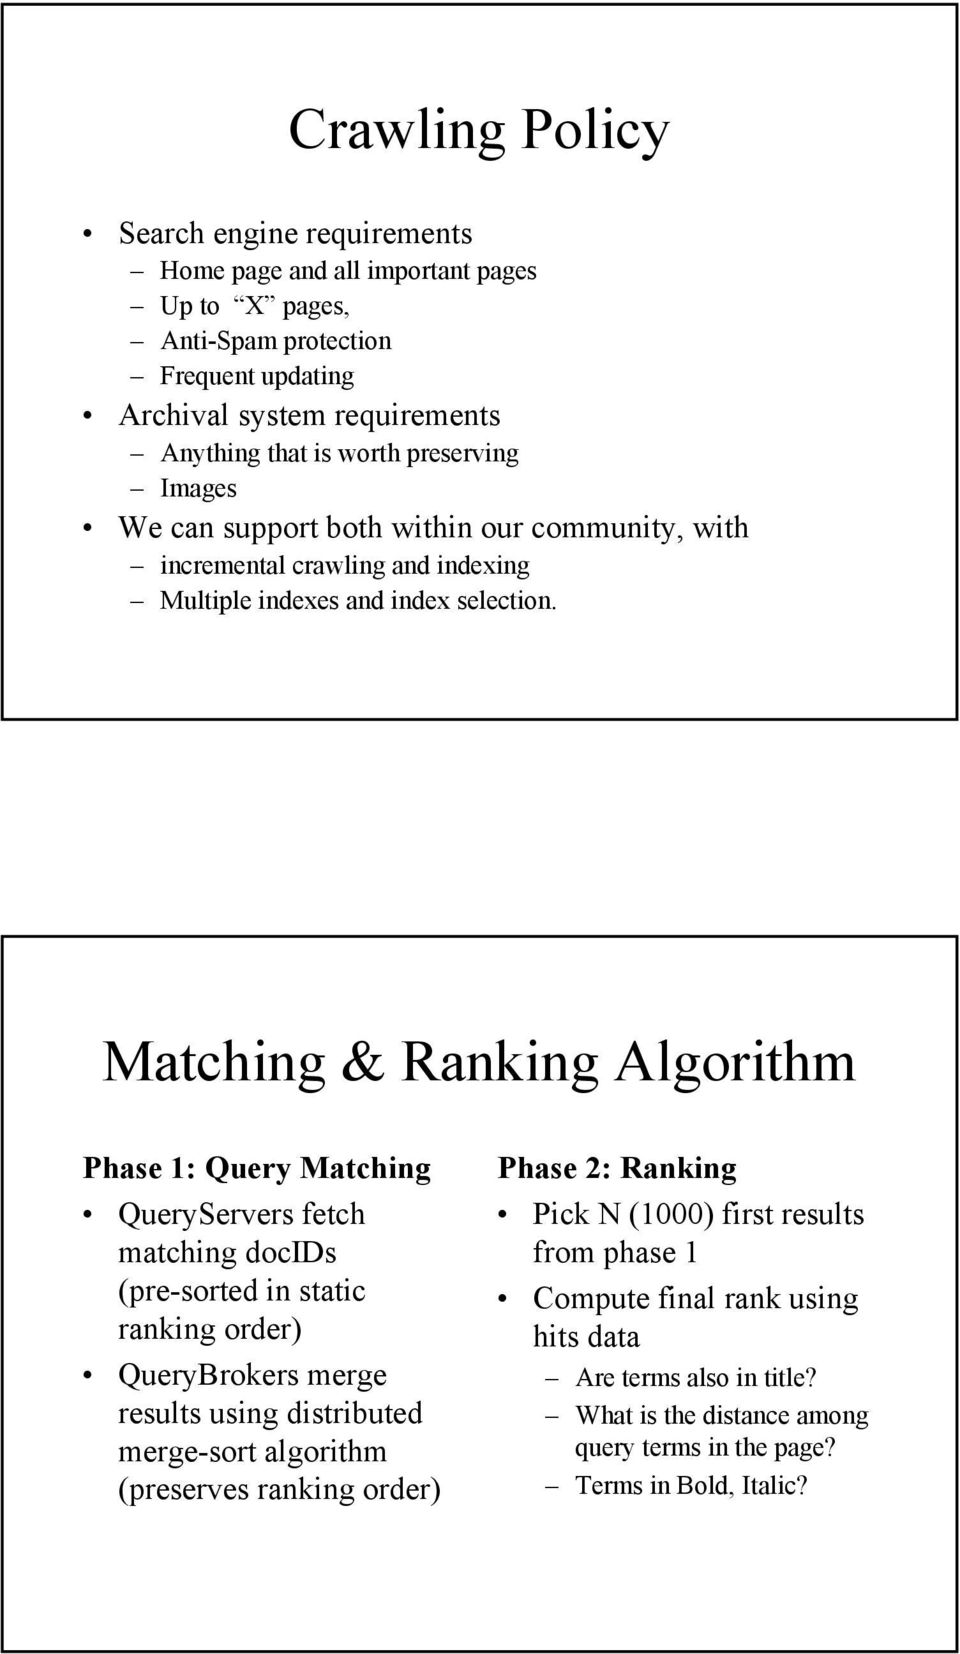 Matching & Ranking Algorithm Phase 1: Query Matching QueryServers fetch matching docids (pre-sorted in static ranking order) QueryBrokers merge results using distributed merge-sort